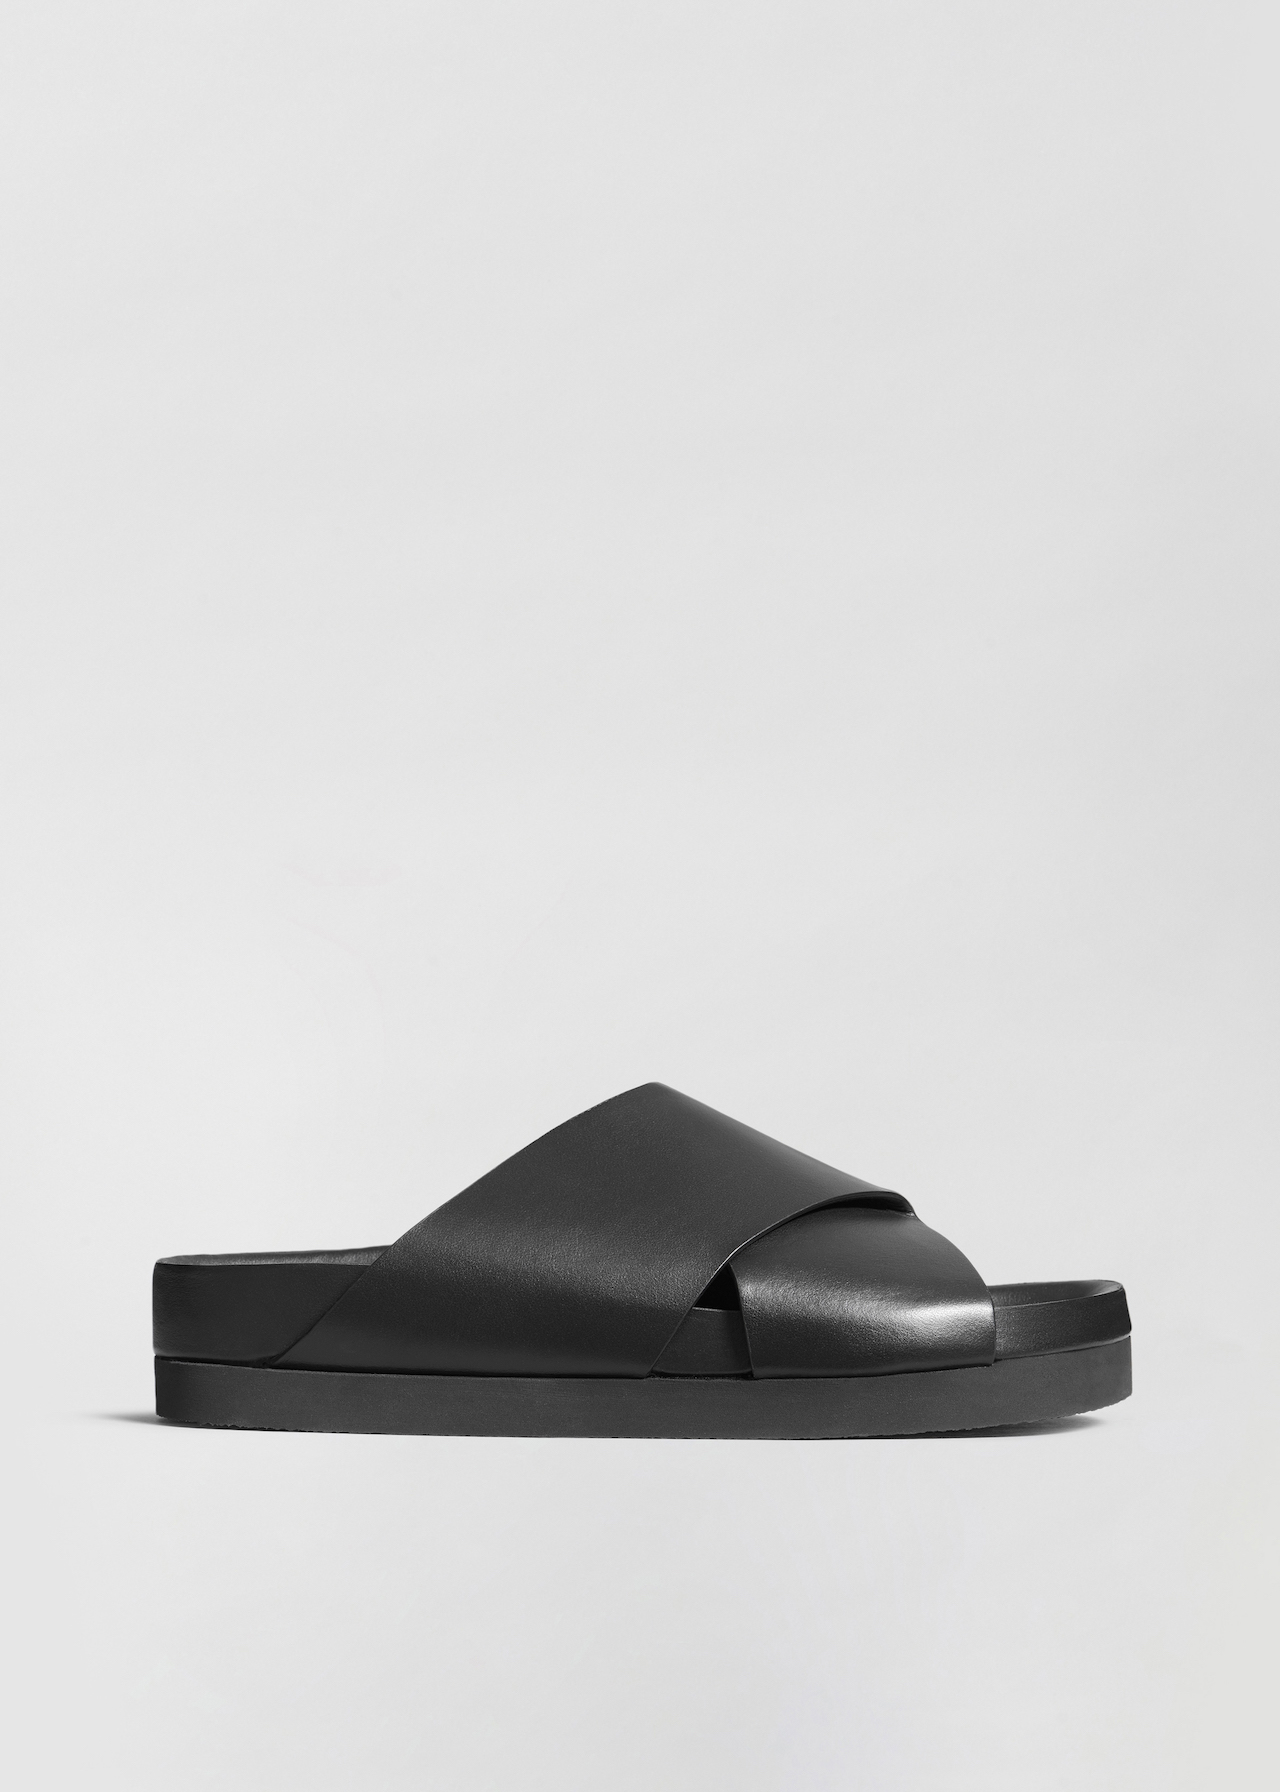 Slide Sandal in Smooth Leather - Ivory in Black by Co Collections